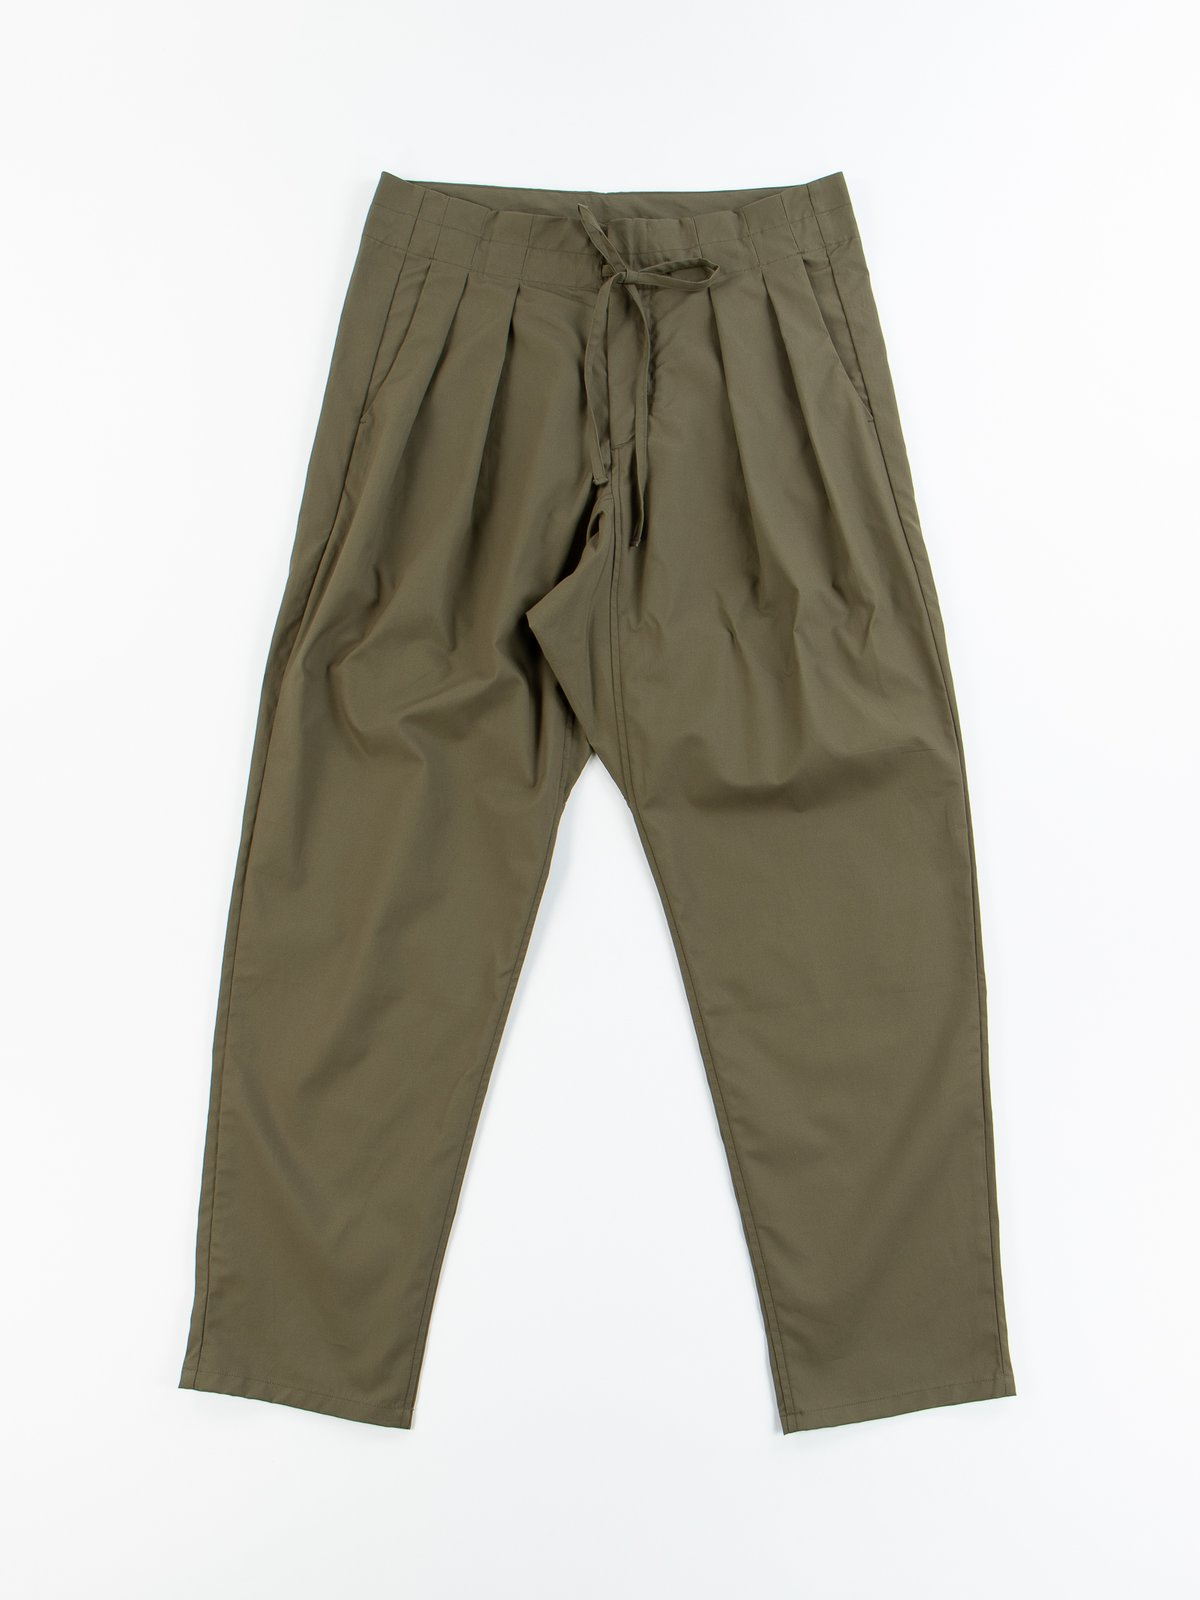 Olive Oxford Vancloth Drop Crotch Pant - Image 1